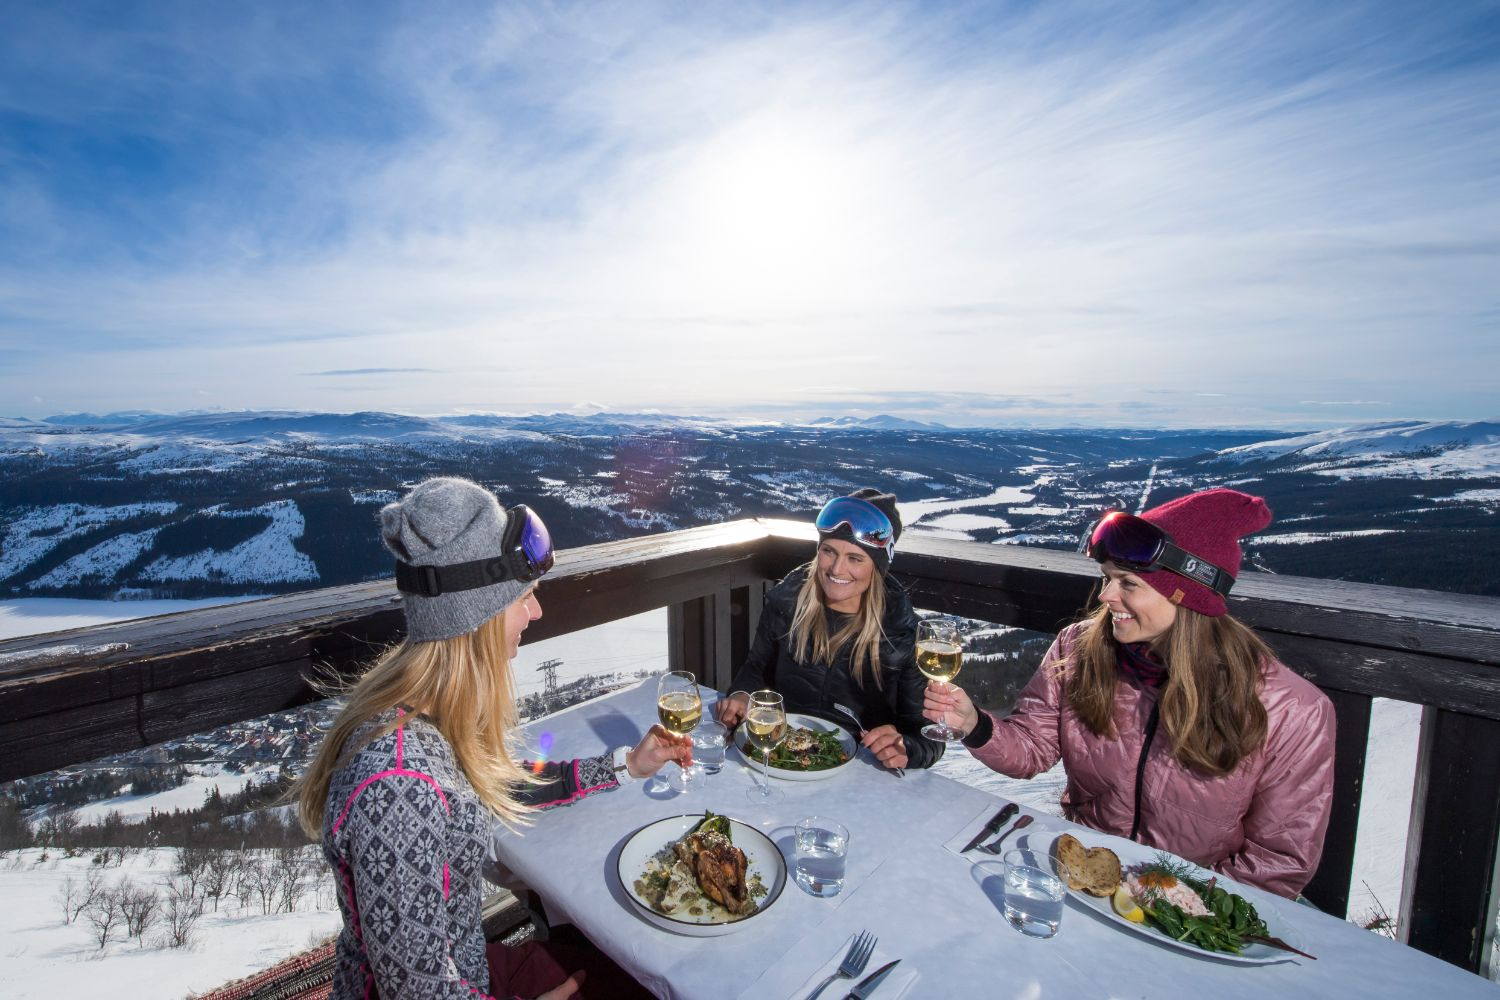 Lunch on the Mountain in Åre © Ola Matsson